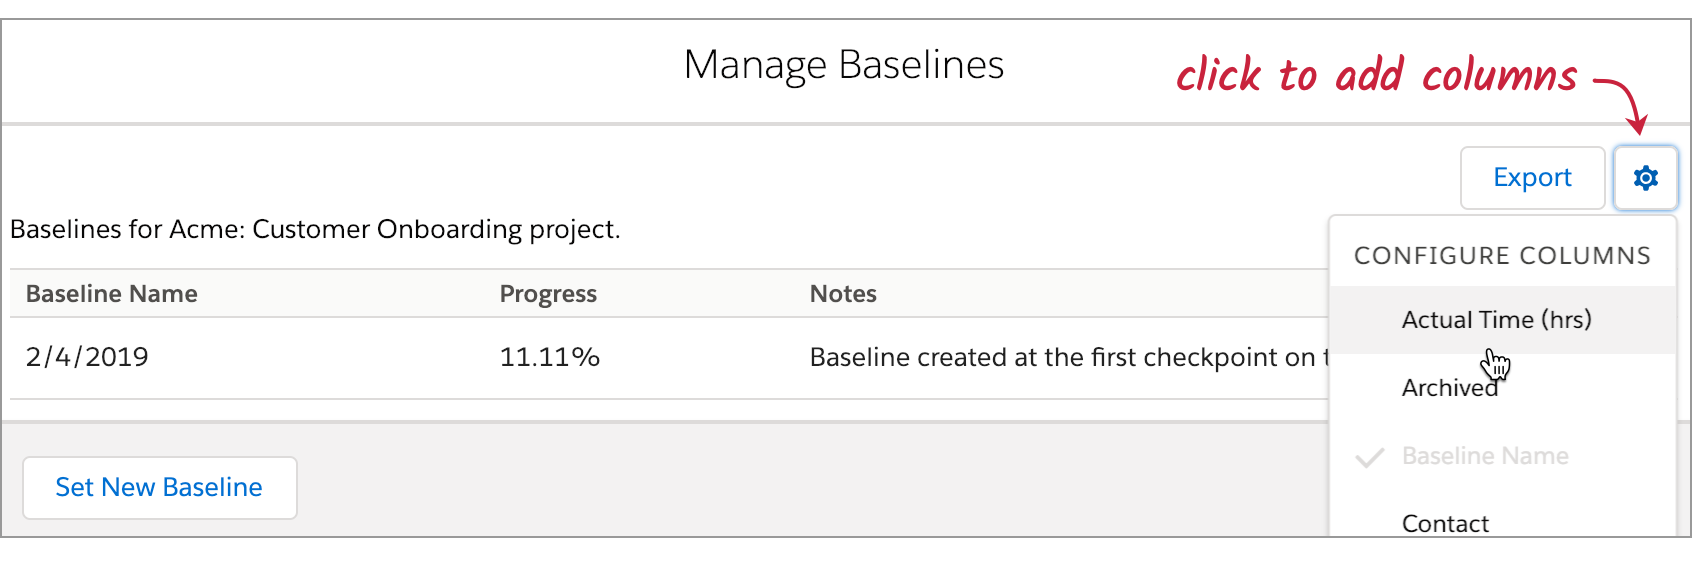 manage_baselines_add_columns__1_.png